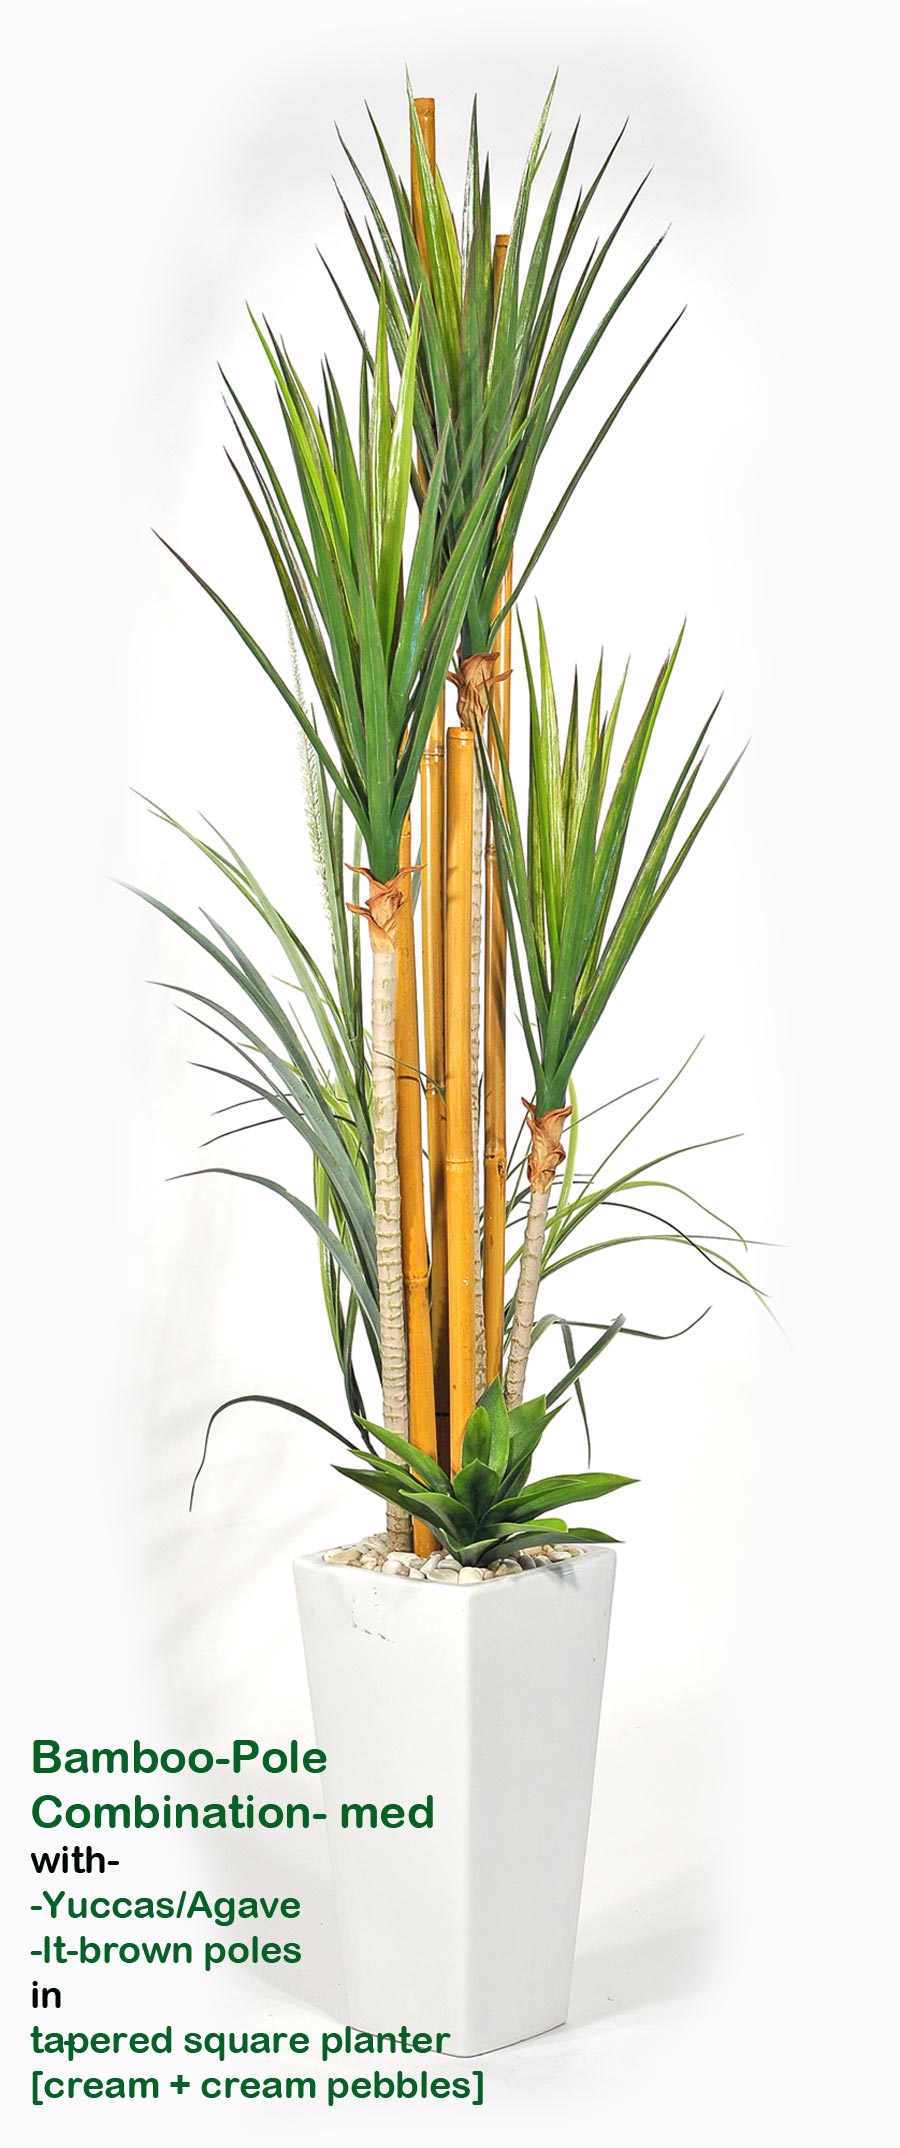 Bamboo-Pole Combination (Med)- Yuccas in light-planter